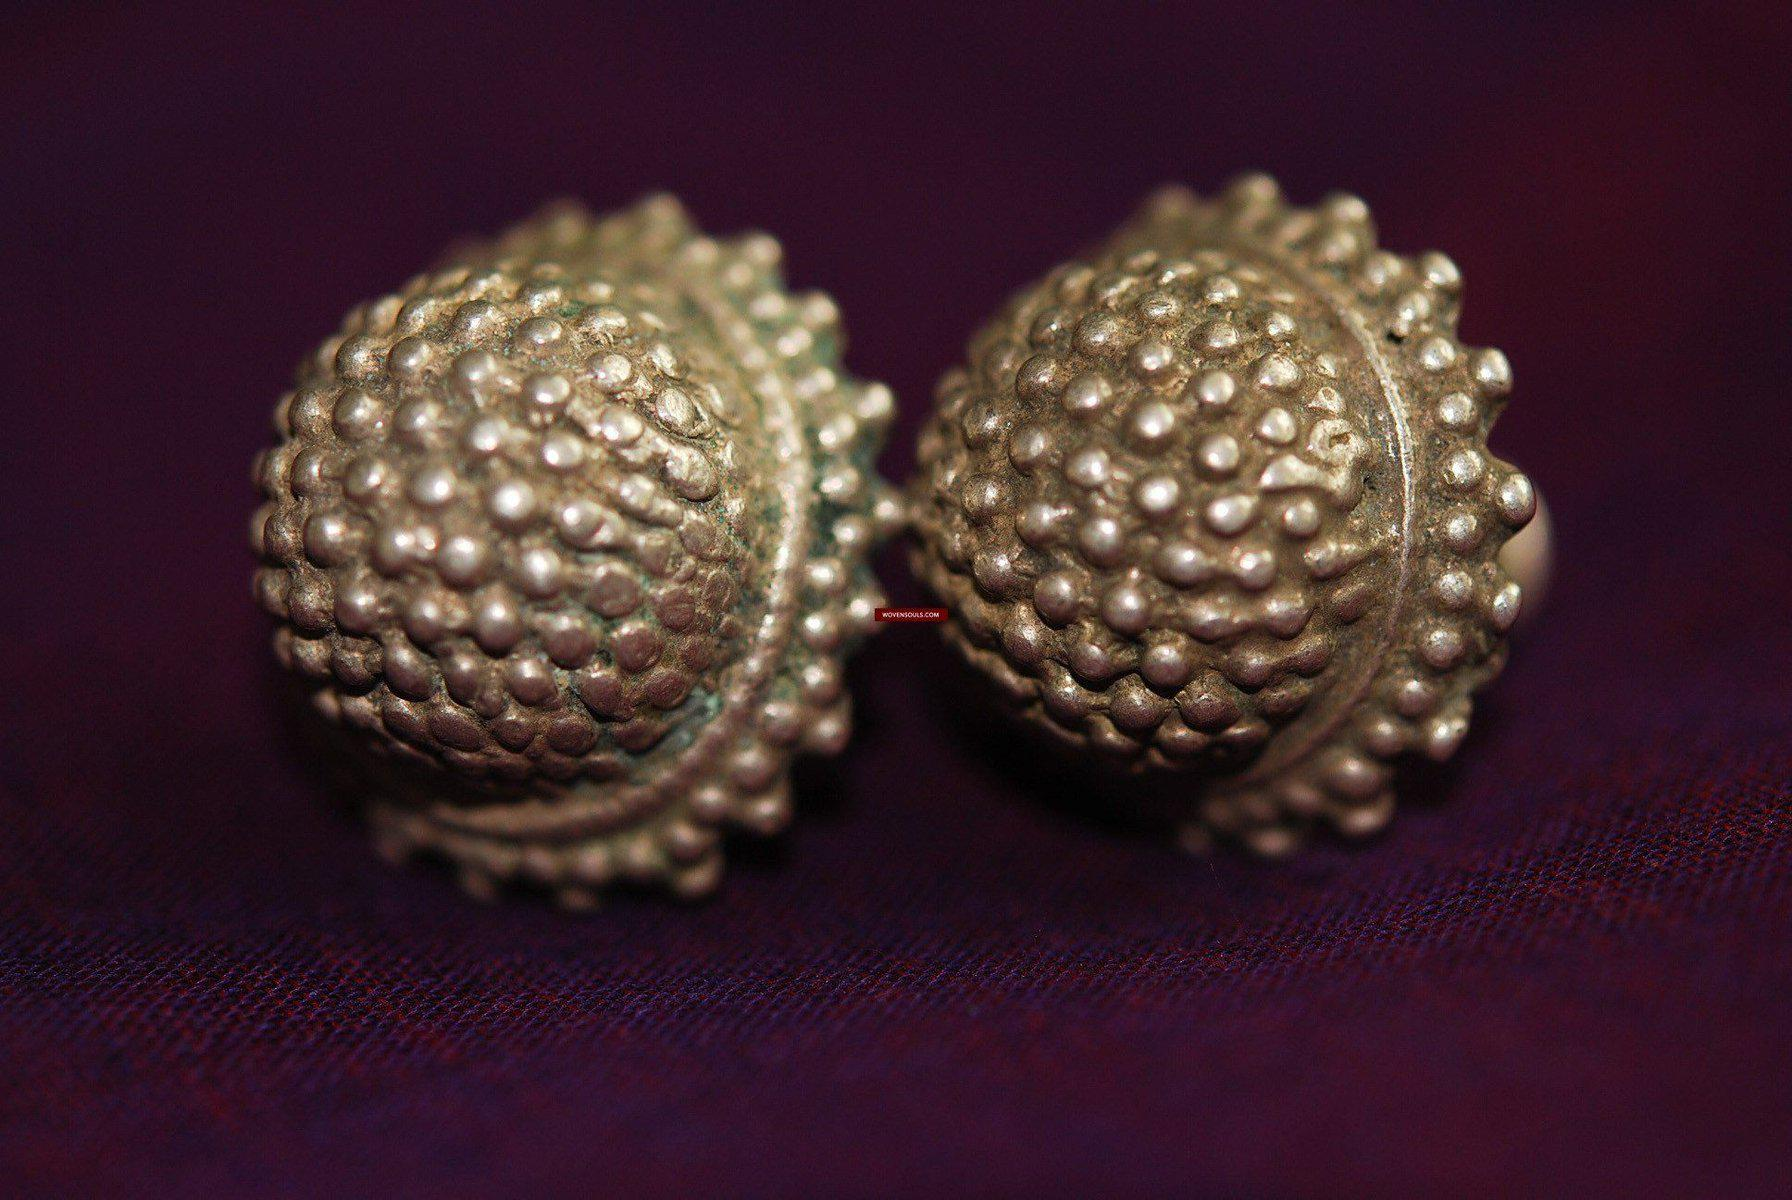 scott antiq antique in earrings silver kendra shiloh